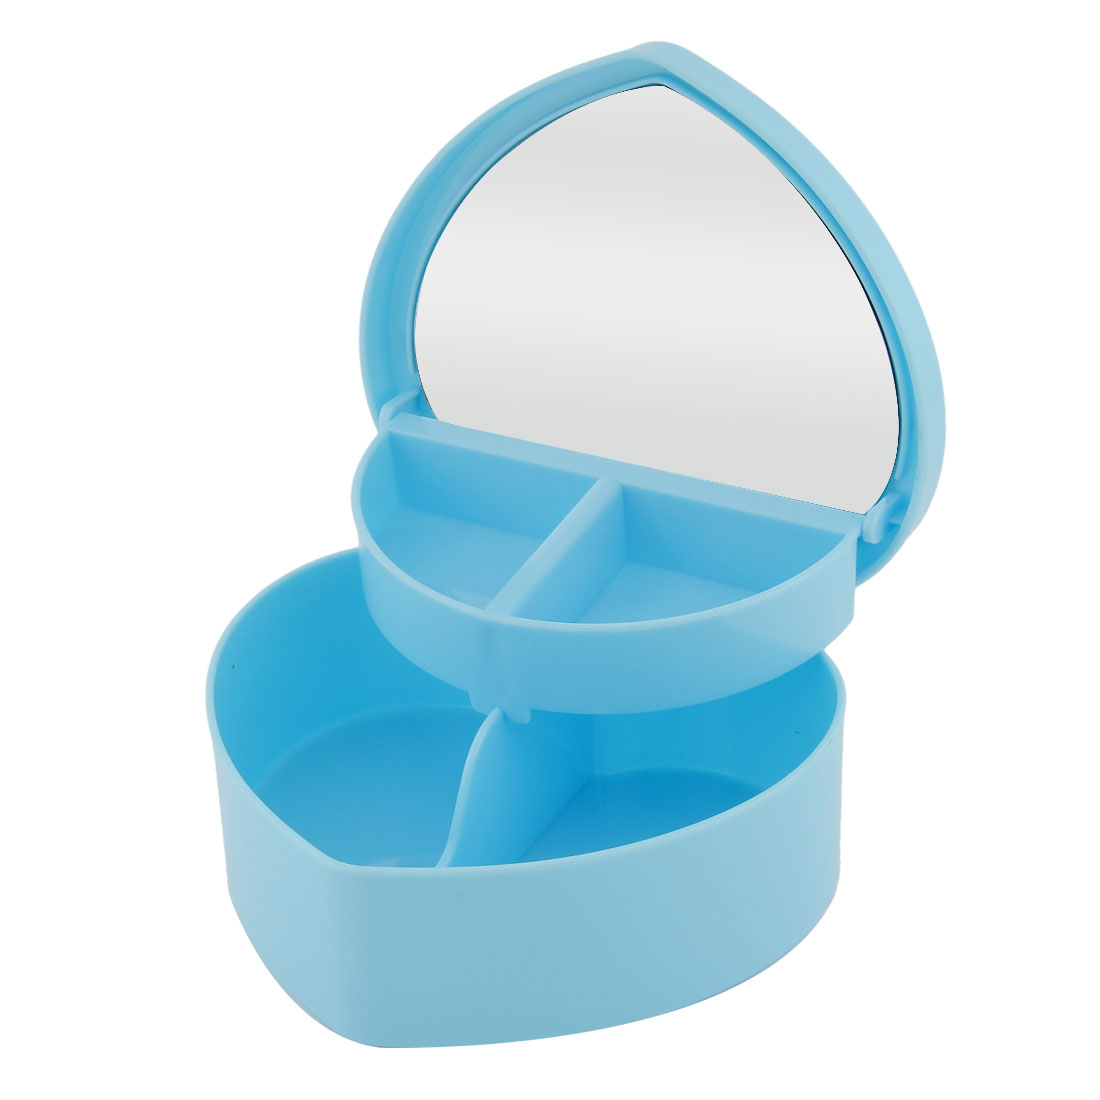 Ladies Plastic Heart Shaped Ring Bracelet Makeup Cosmetic Organizer Storage Case Blue w Mirror